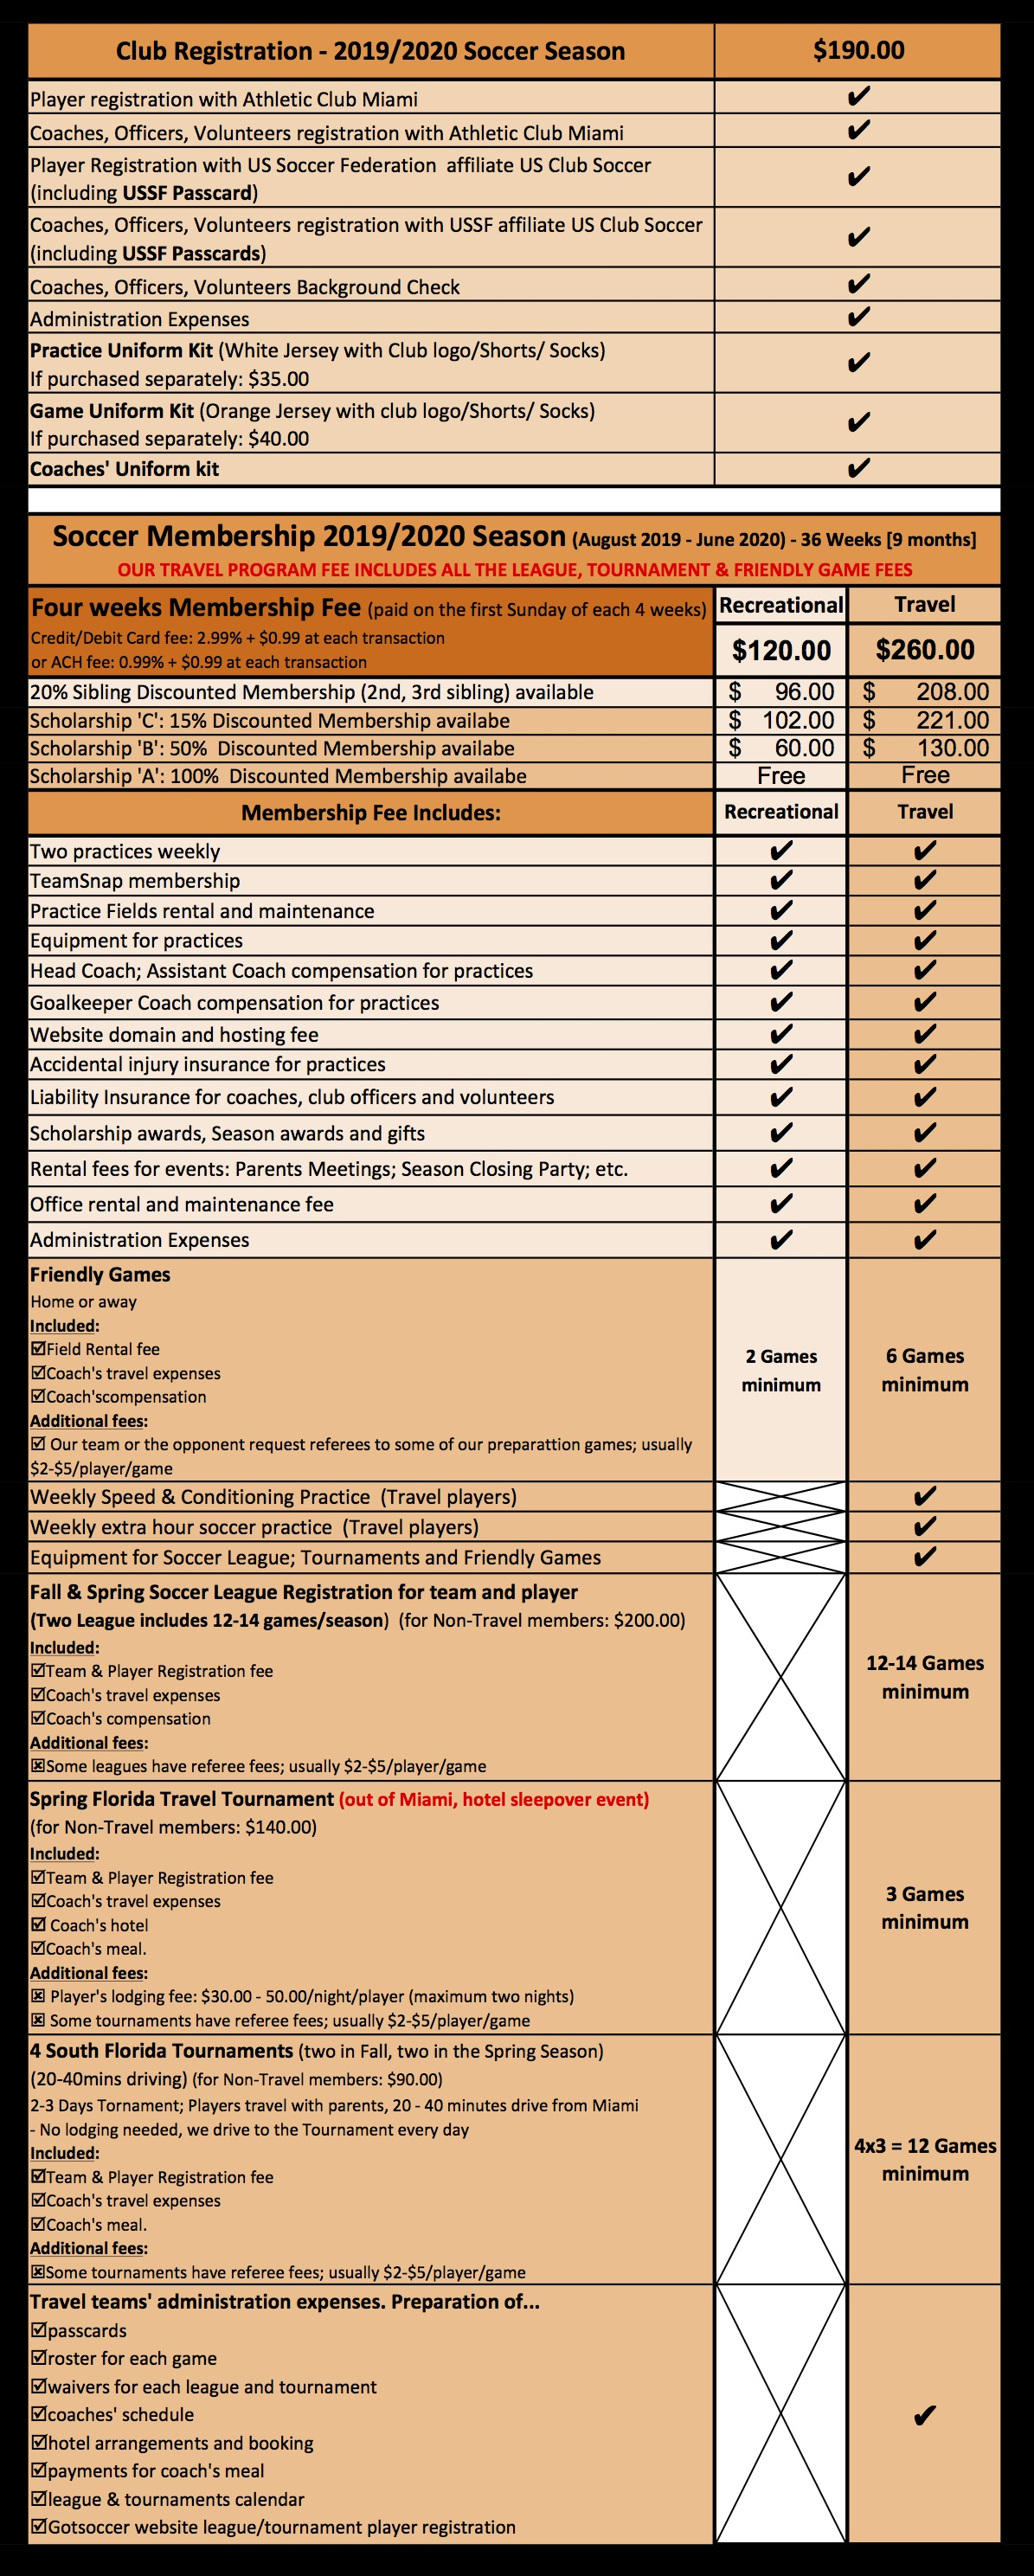 Fees - Soccer - 2019/2020 Season